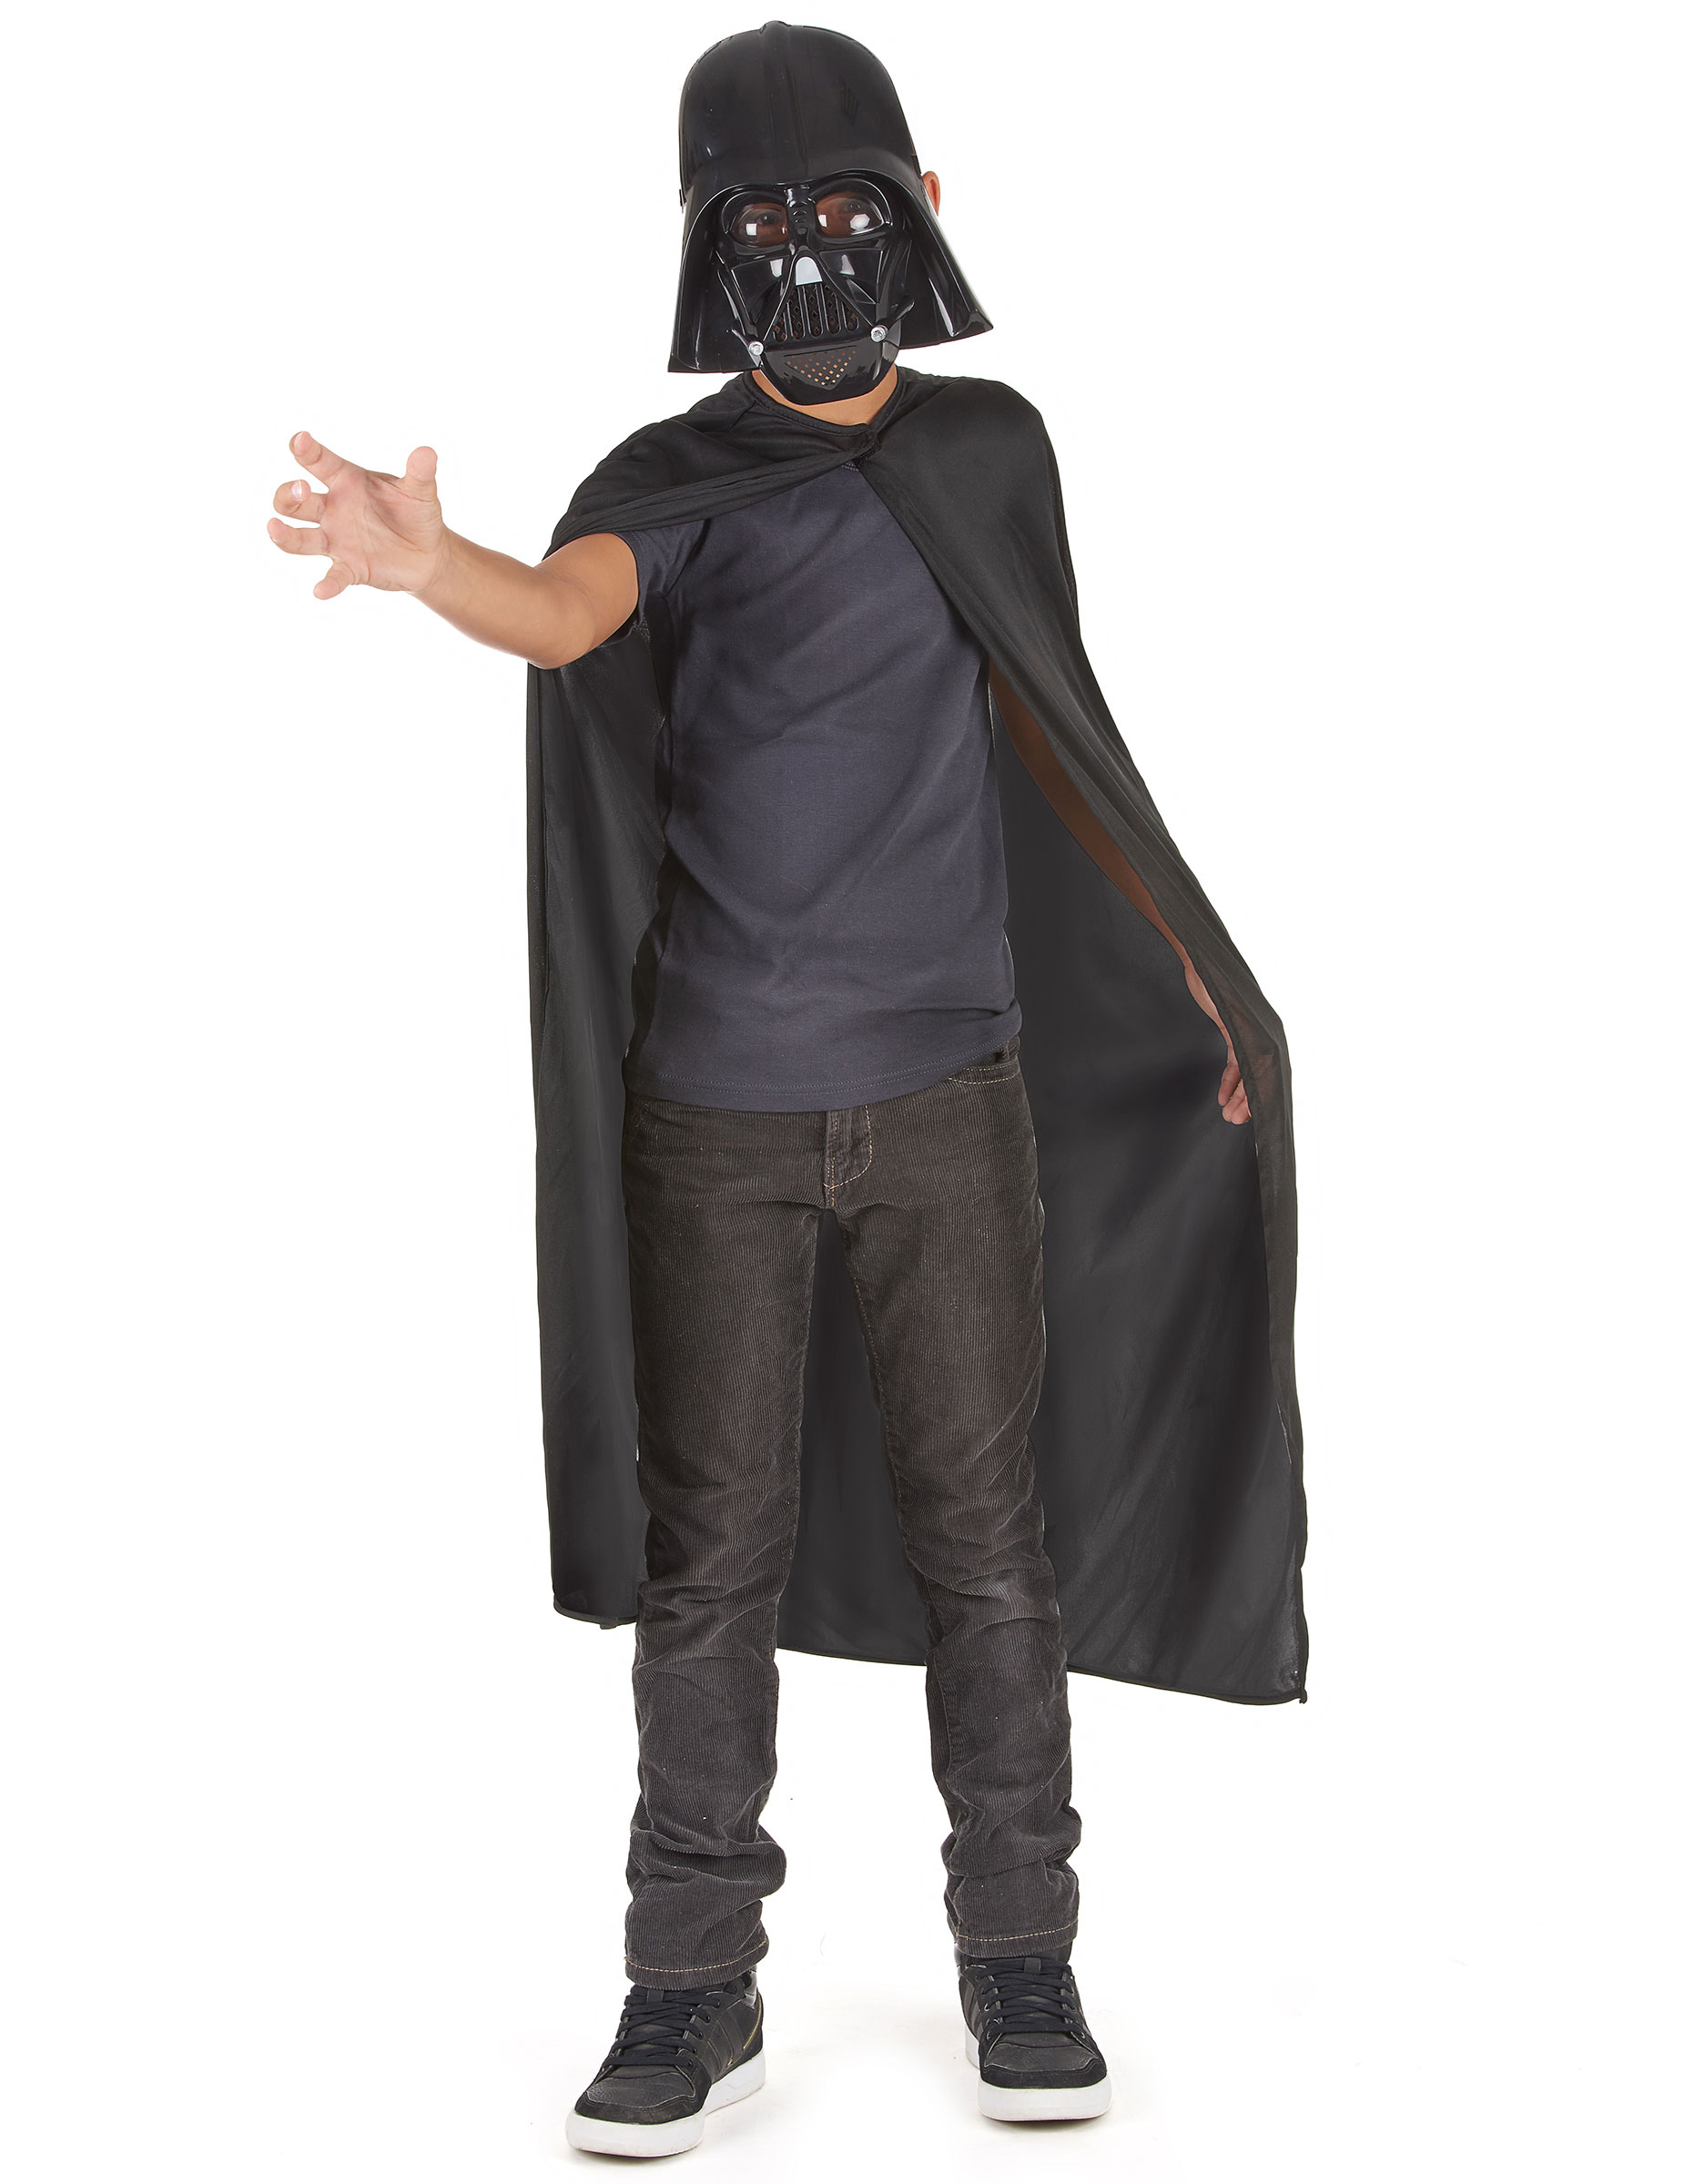 official darth vader kit for children kids costumes and fancy dress costumes vegaoo. Black Bedroom Furniture Sets. Home Design Ideas